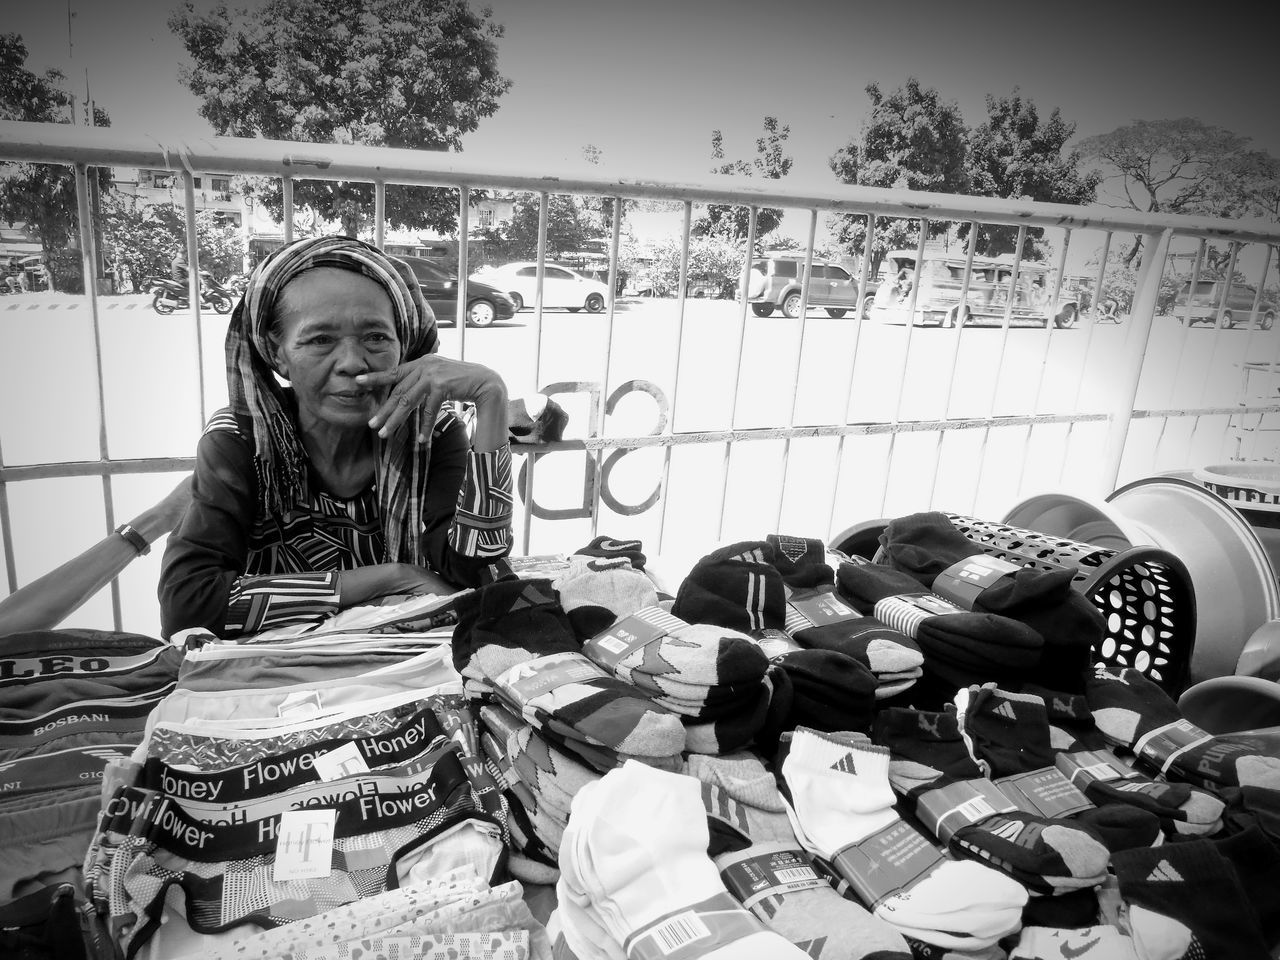 Store One Person Eye4photography  Eyeem Philippines Blackandwhite Street Photography One Woman Only People Photography Streetphotography Urban Lifestyle Real People Monochrome Photography Street Photography Outdoors Woman At Work Monochrome Black And White Photography